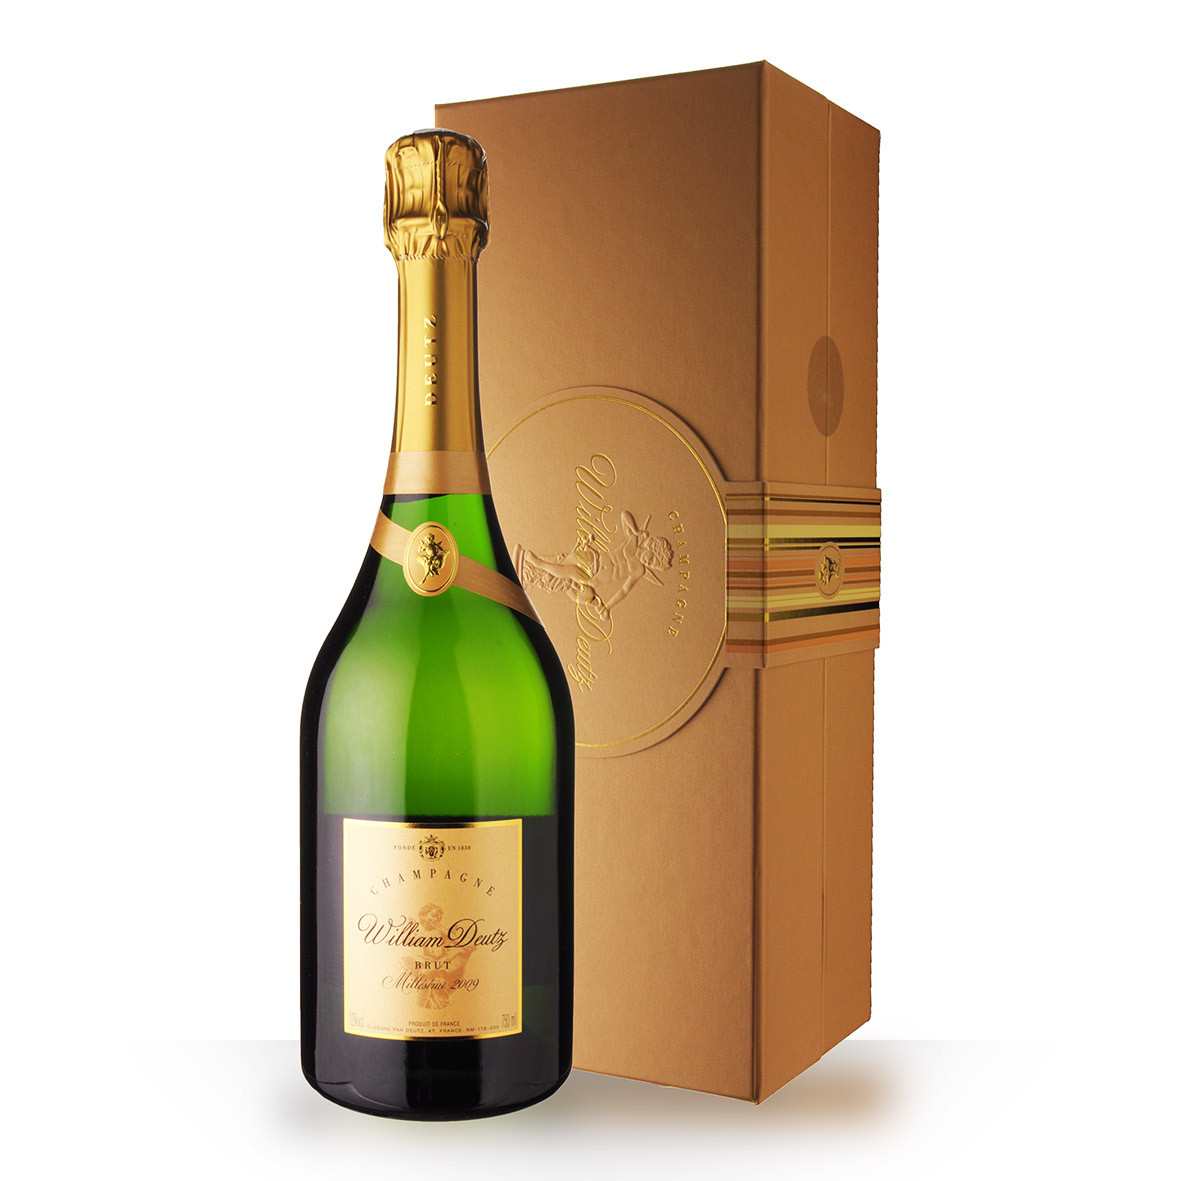 Champagne Deutz Cuvée William Deutz 2009 Brut 75cl Coffret www.odyssee-vins.com